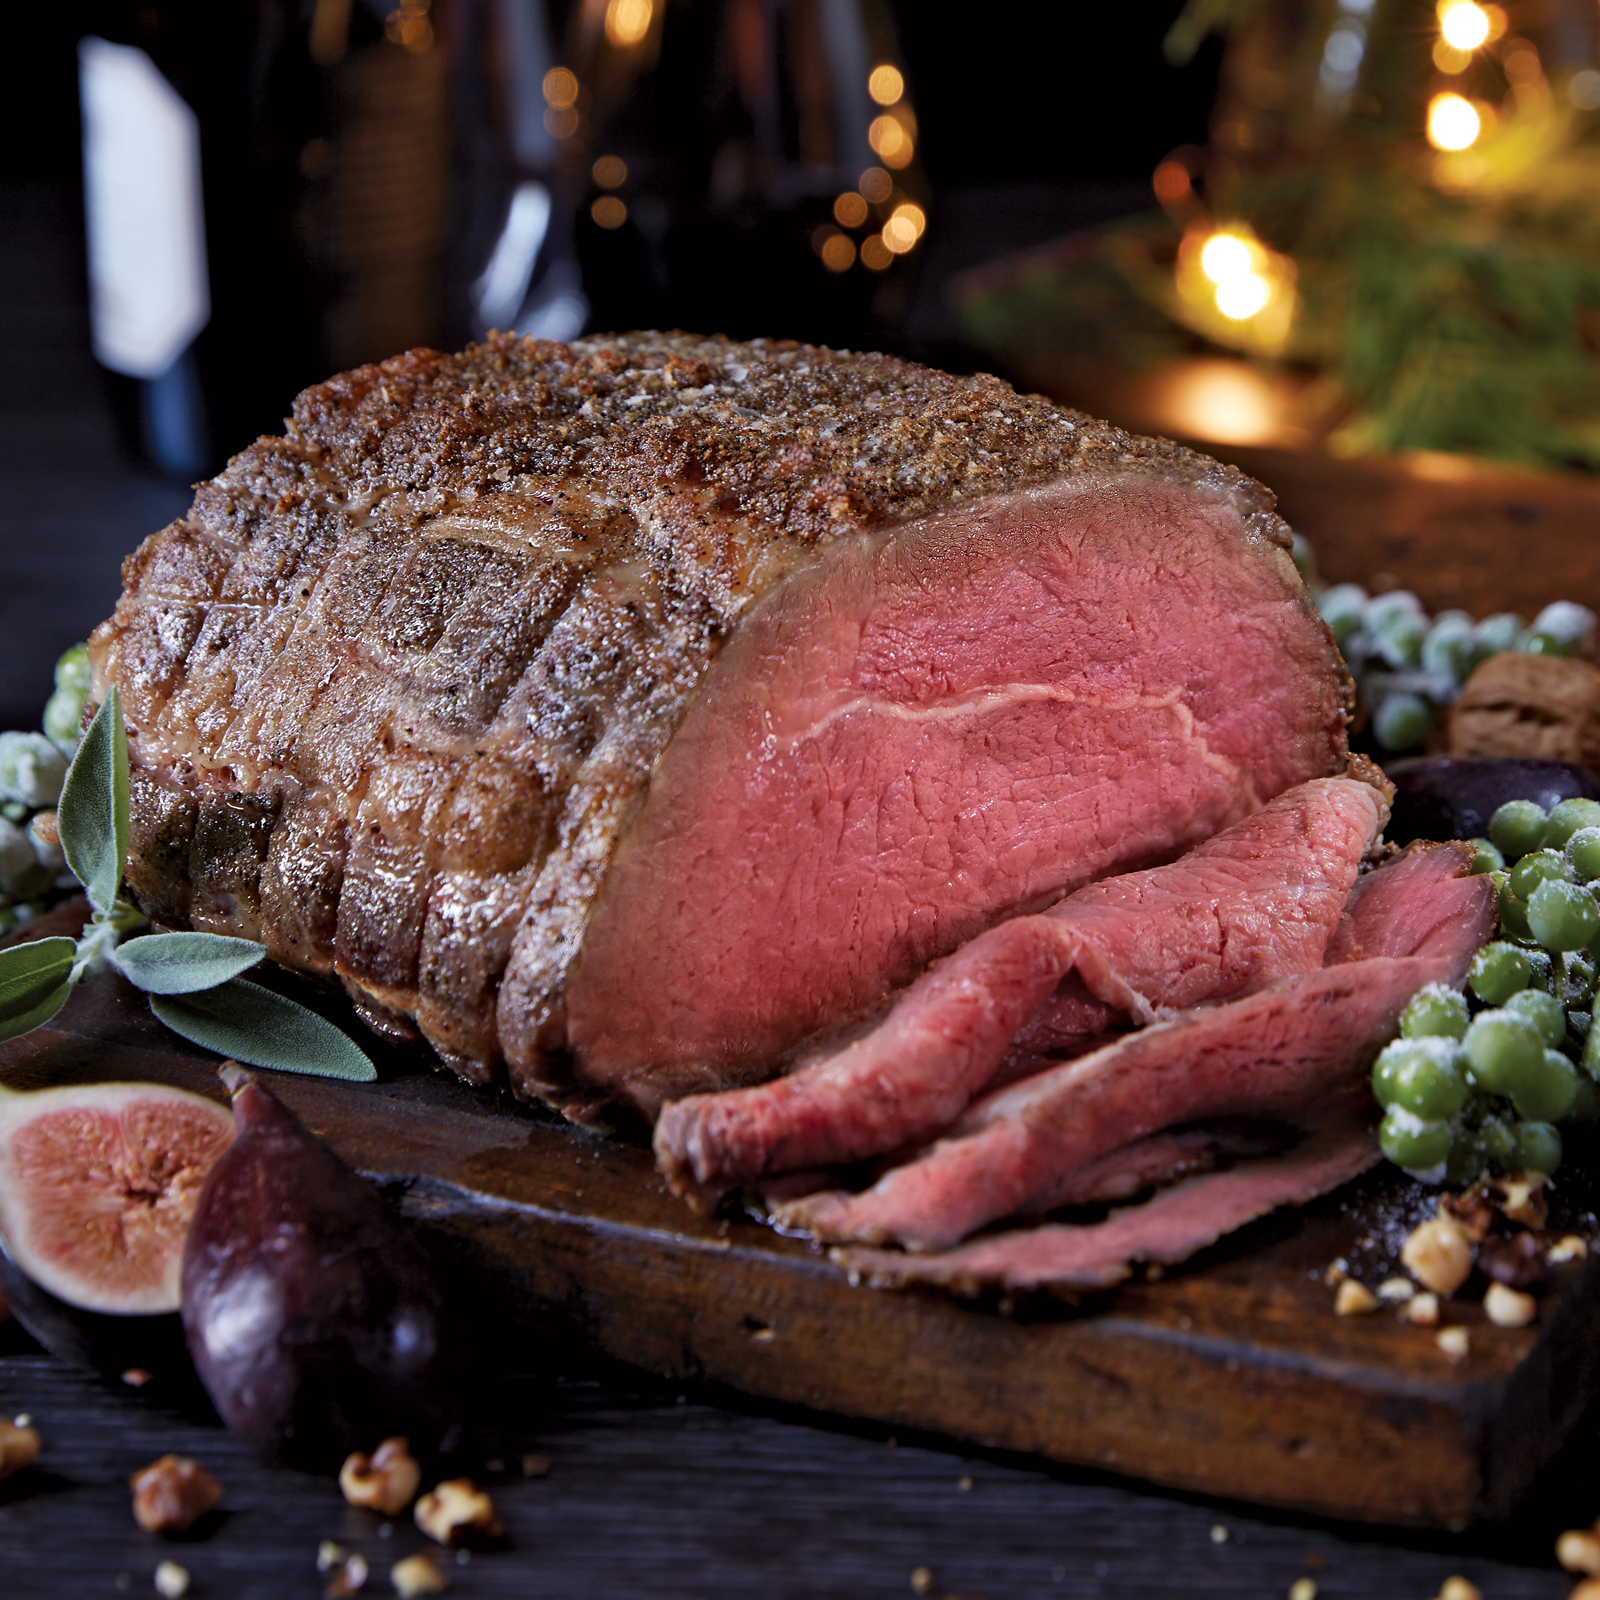 6 Mouth-Watering Prime Rib Recipes You'll Love